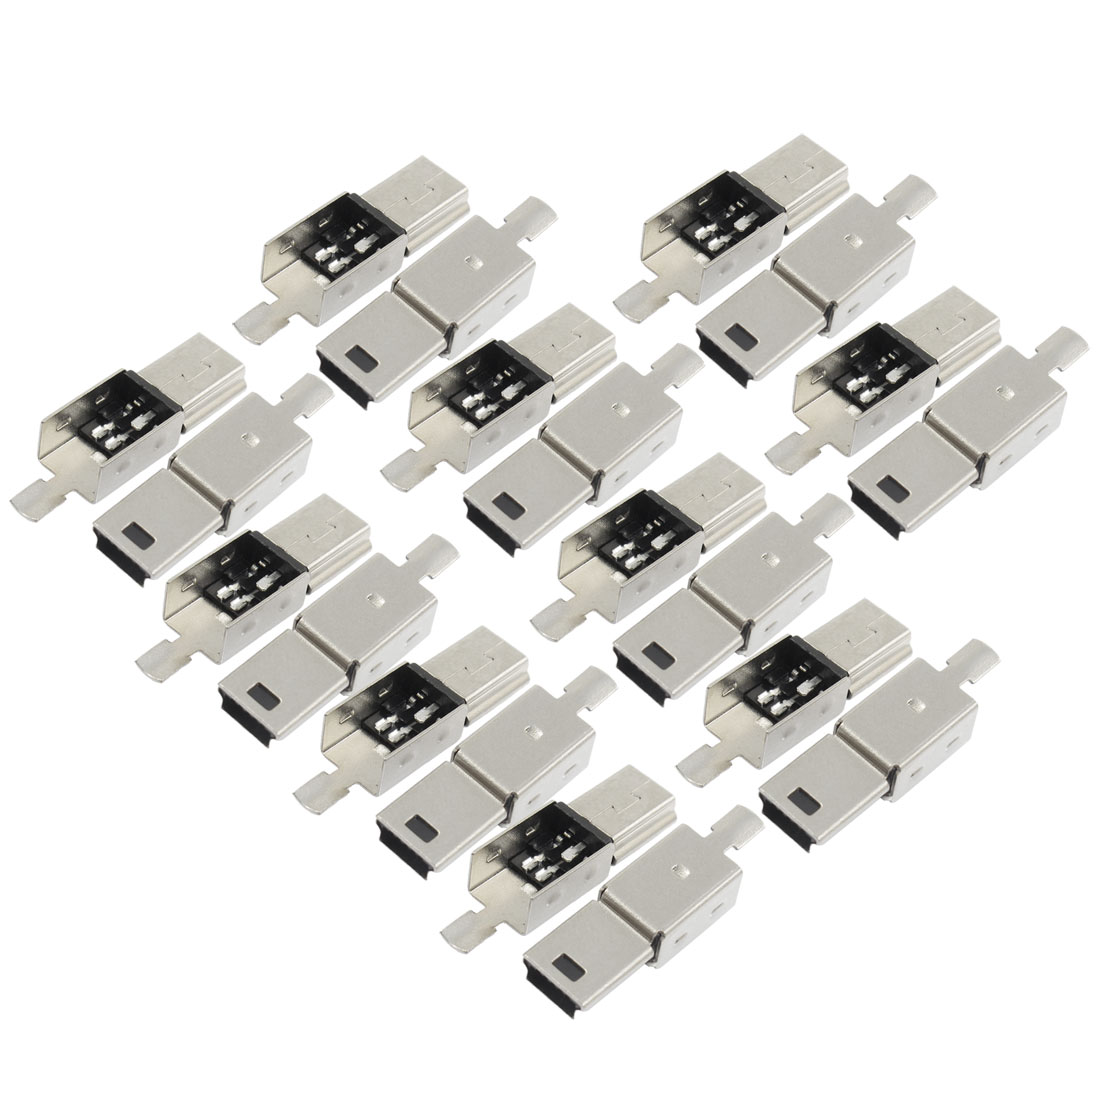 Mini USB 5 Pin Type A Male Connector Replacement Port Solder Jack 20 Pcs